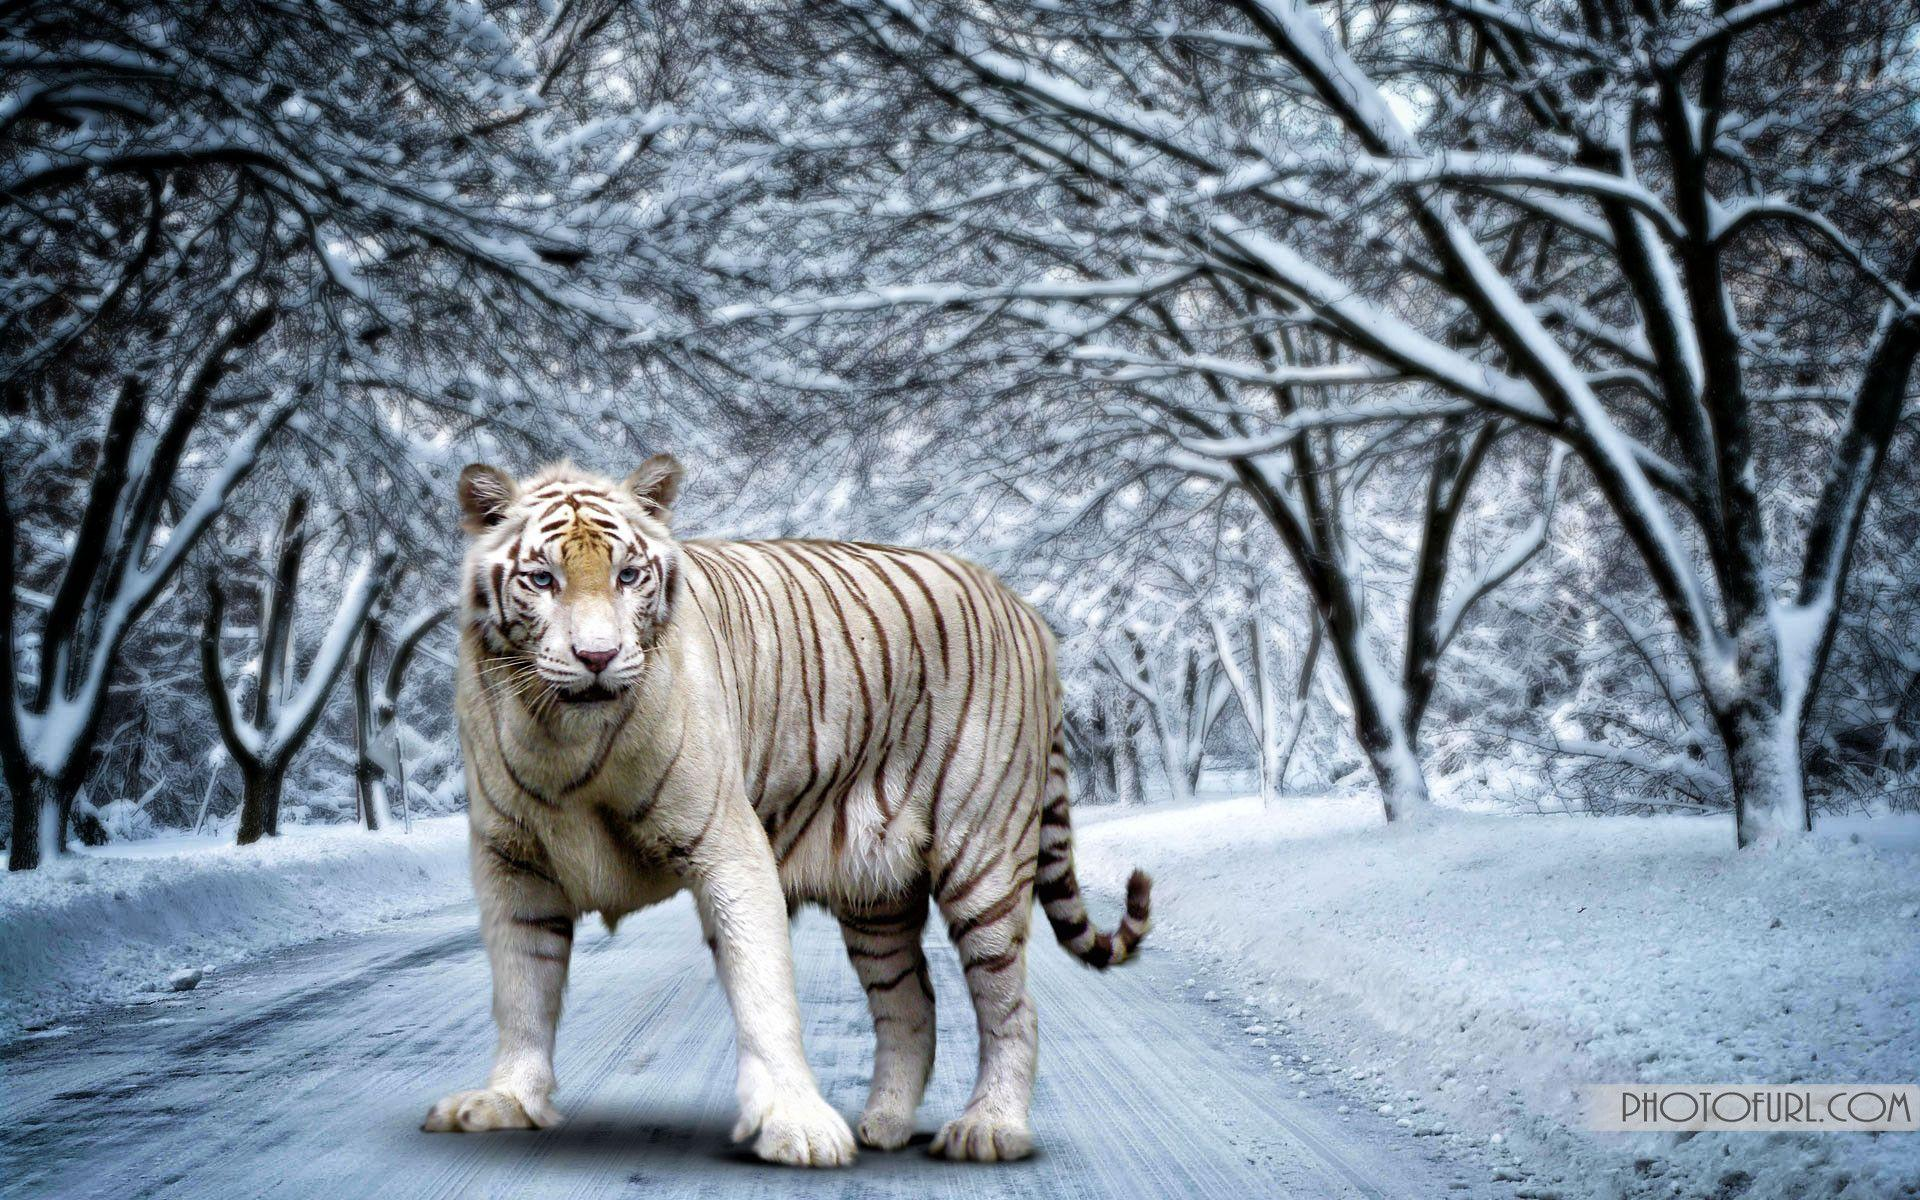 White bengal tiger wallpapers - photo#1